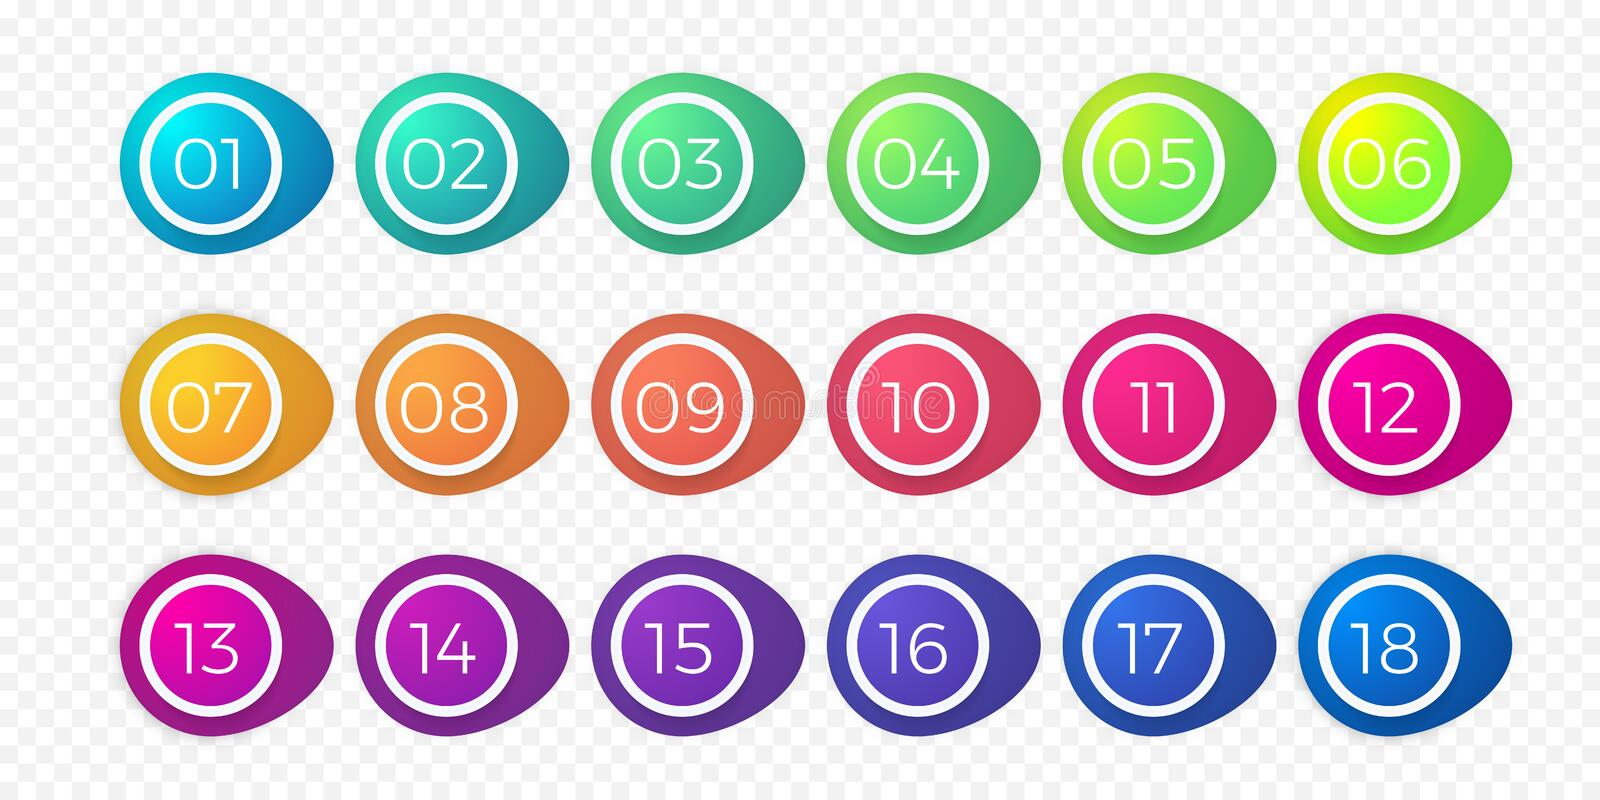 Number bullet point flat color gradient web button vector circle icons. Number bullet point flat color gradient web icons set 1 to 18. Vector step circle buttons vector illustration